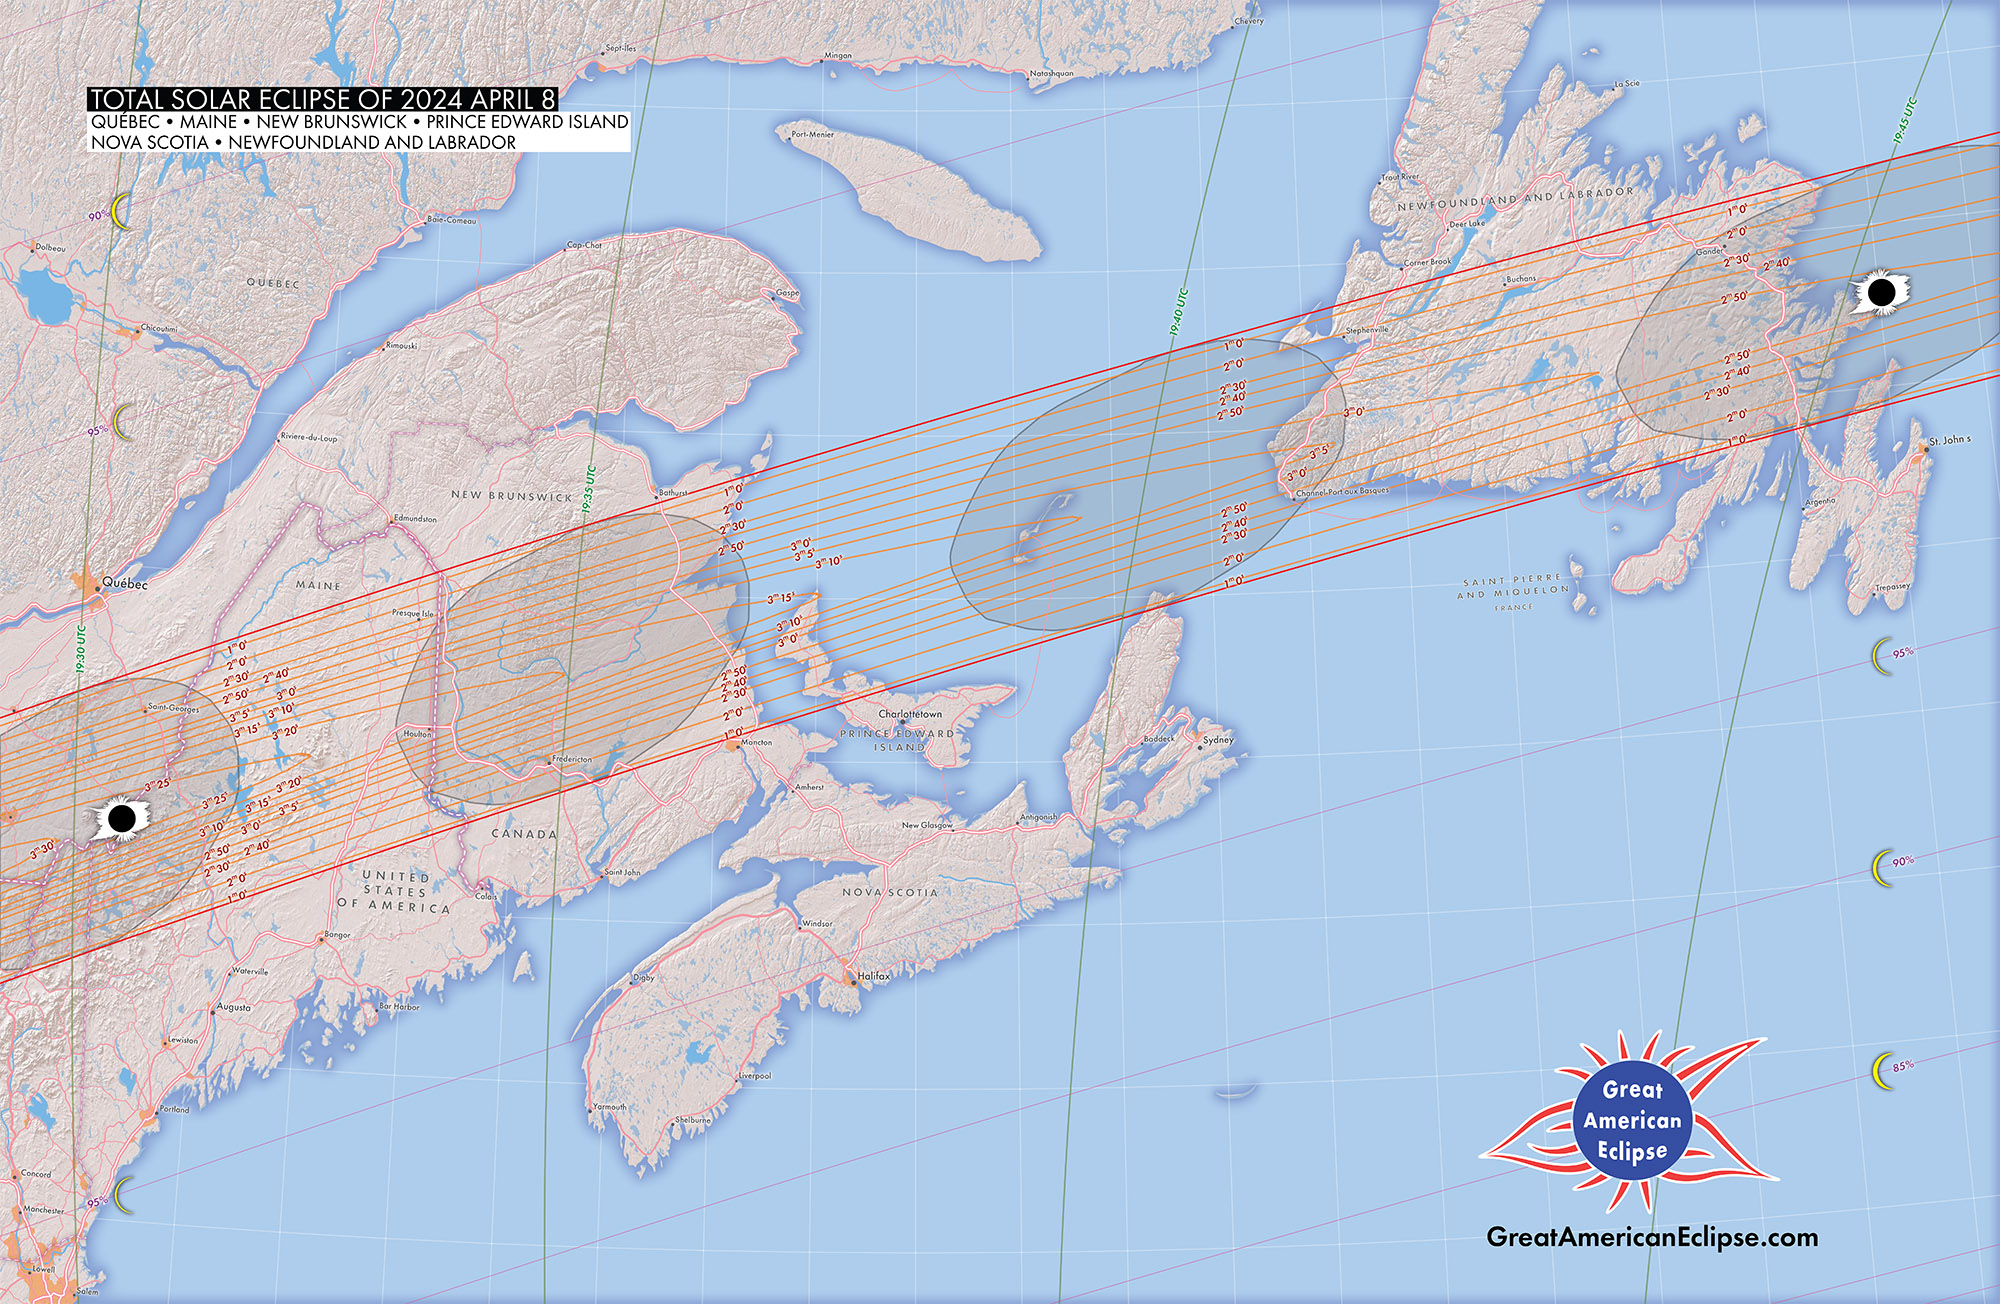 detailed path of the april 8, 2024 total solar eclipse over maine and canadian maritime provinces. from a publication in development. click to enlarge.